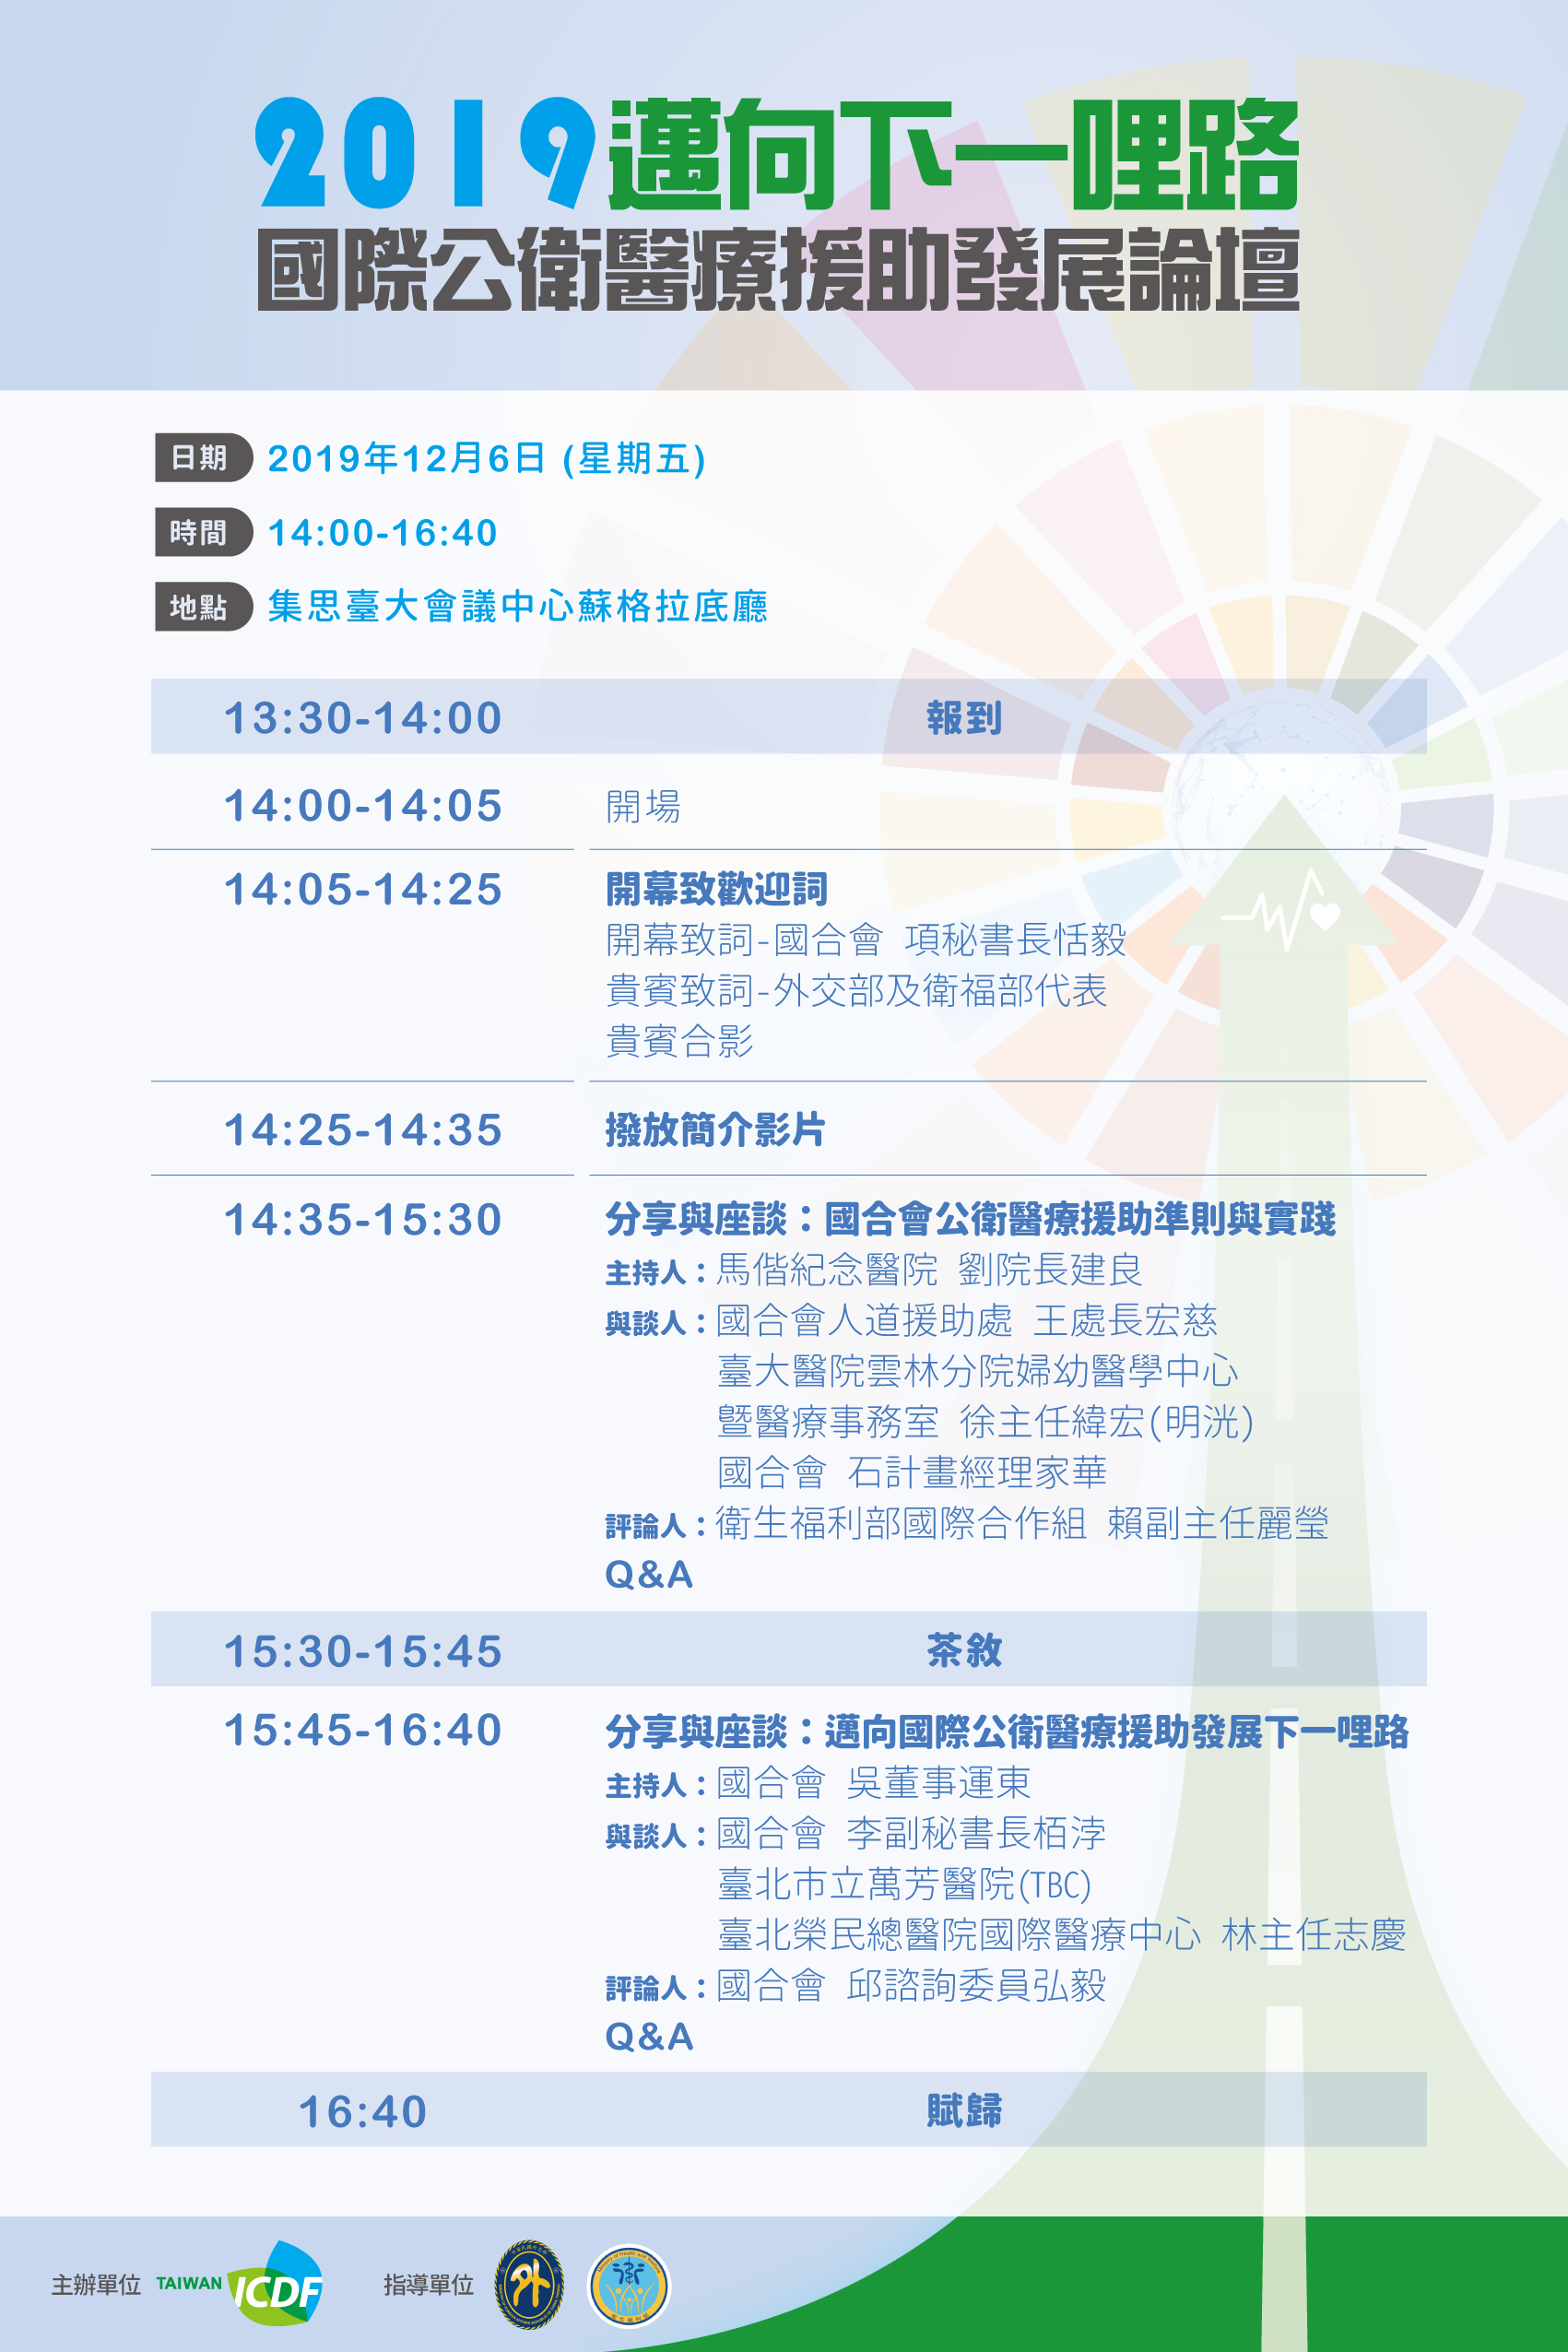 Making strides with medical institutions in international public health medical development—TaiwanICDF holds 2019 International Public Health Medical Aid Development Forum